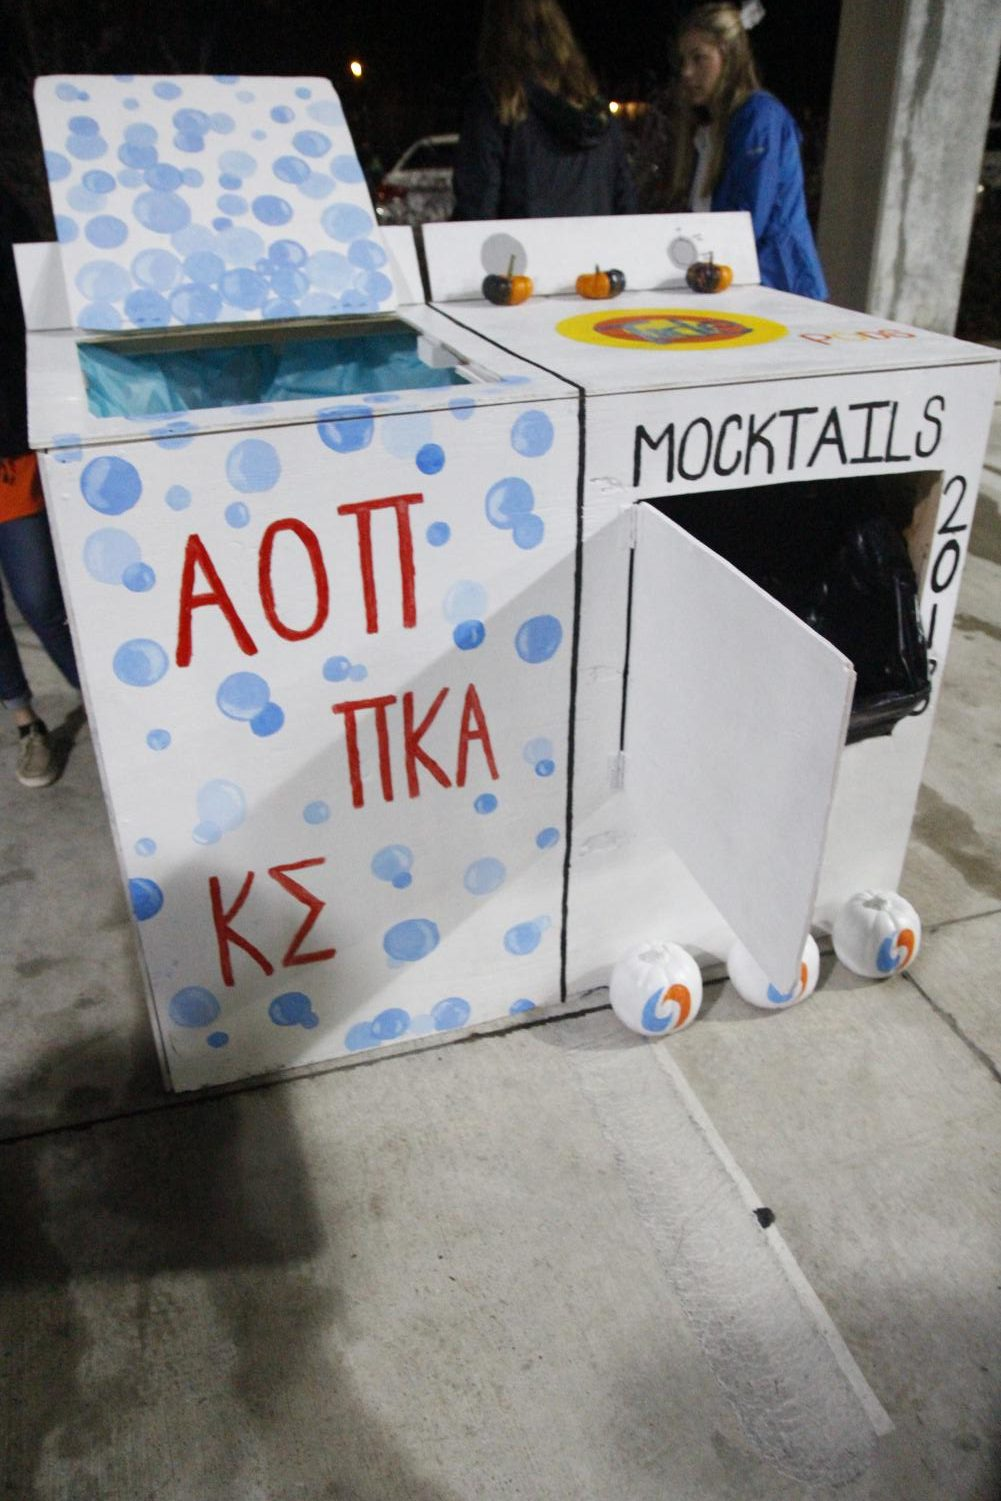 Alpha Omega Pi, Pi Kappa Alpha and Kappa Sigma partnered up to create the first-place booth and overall display.